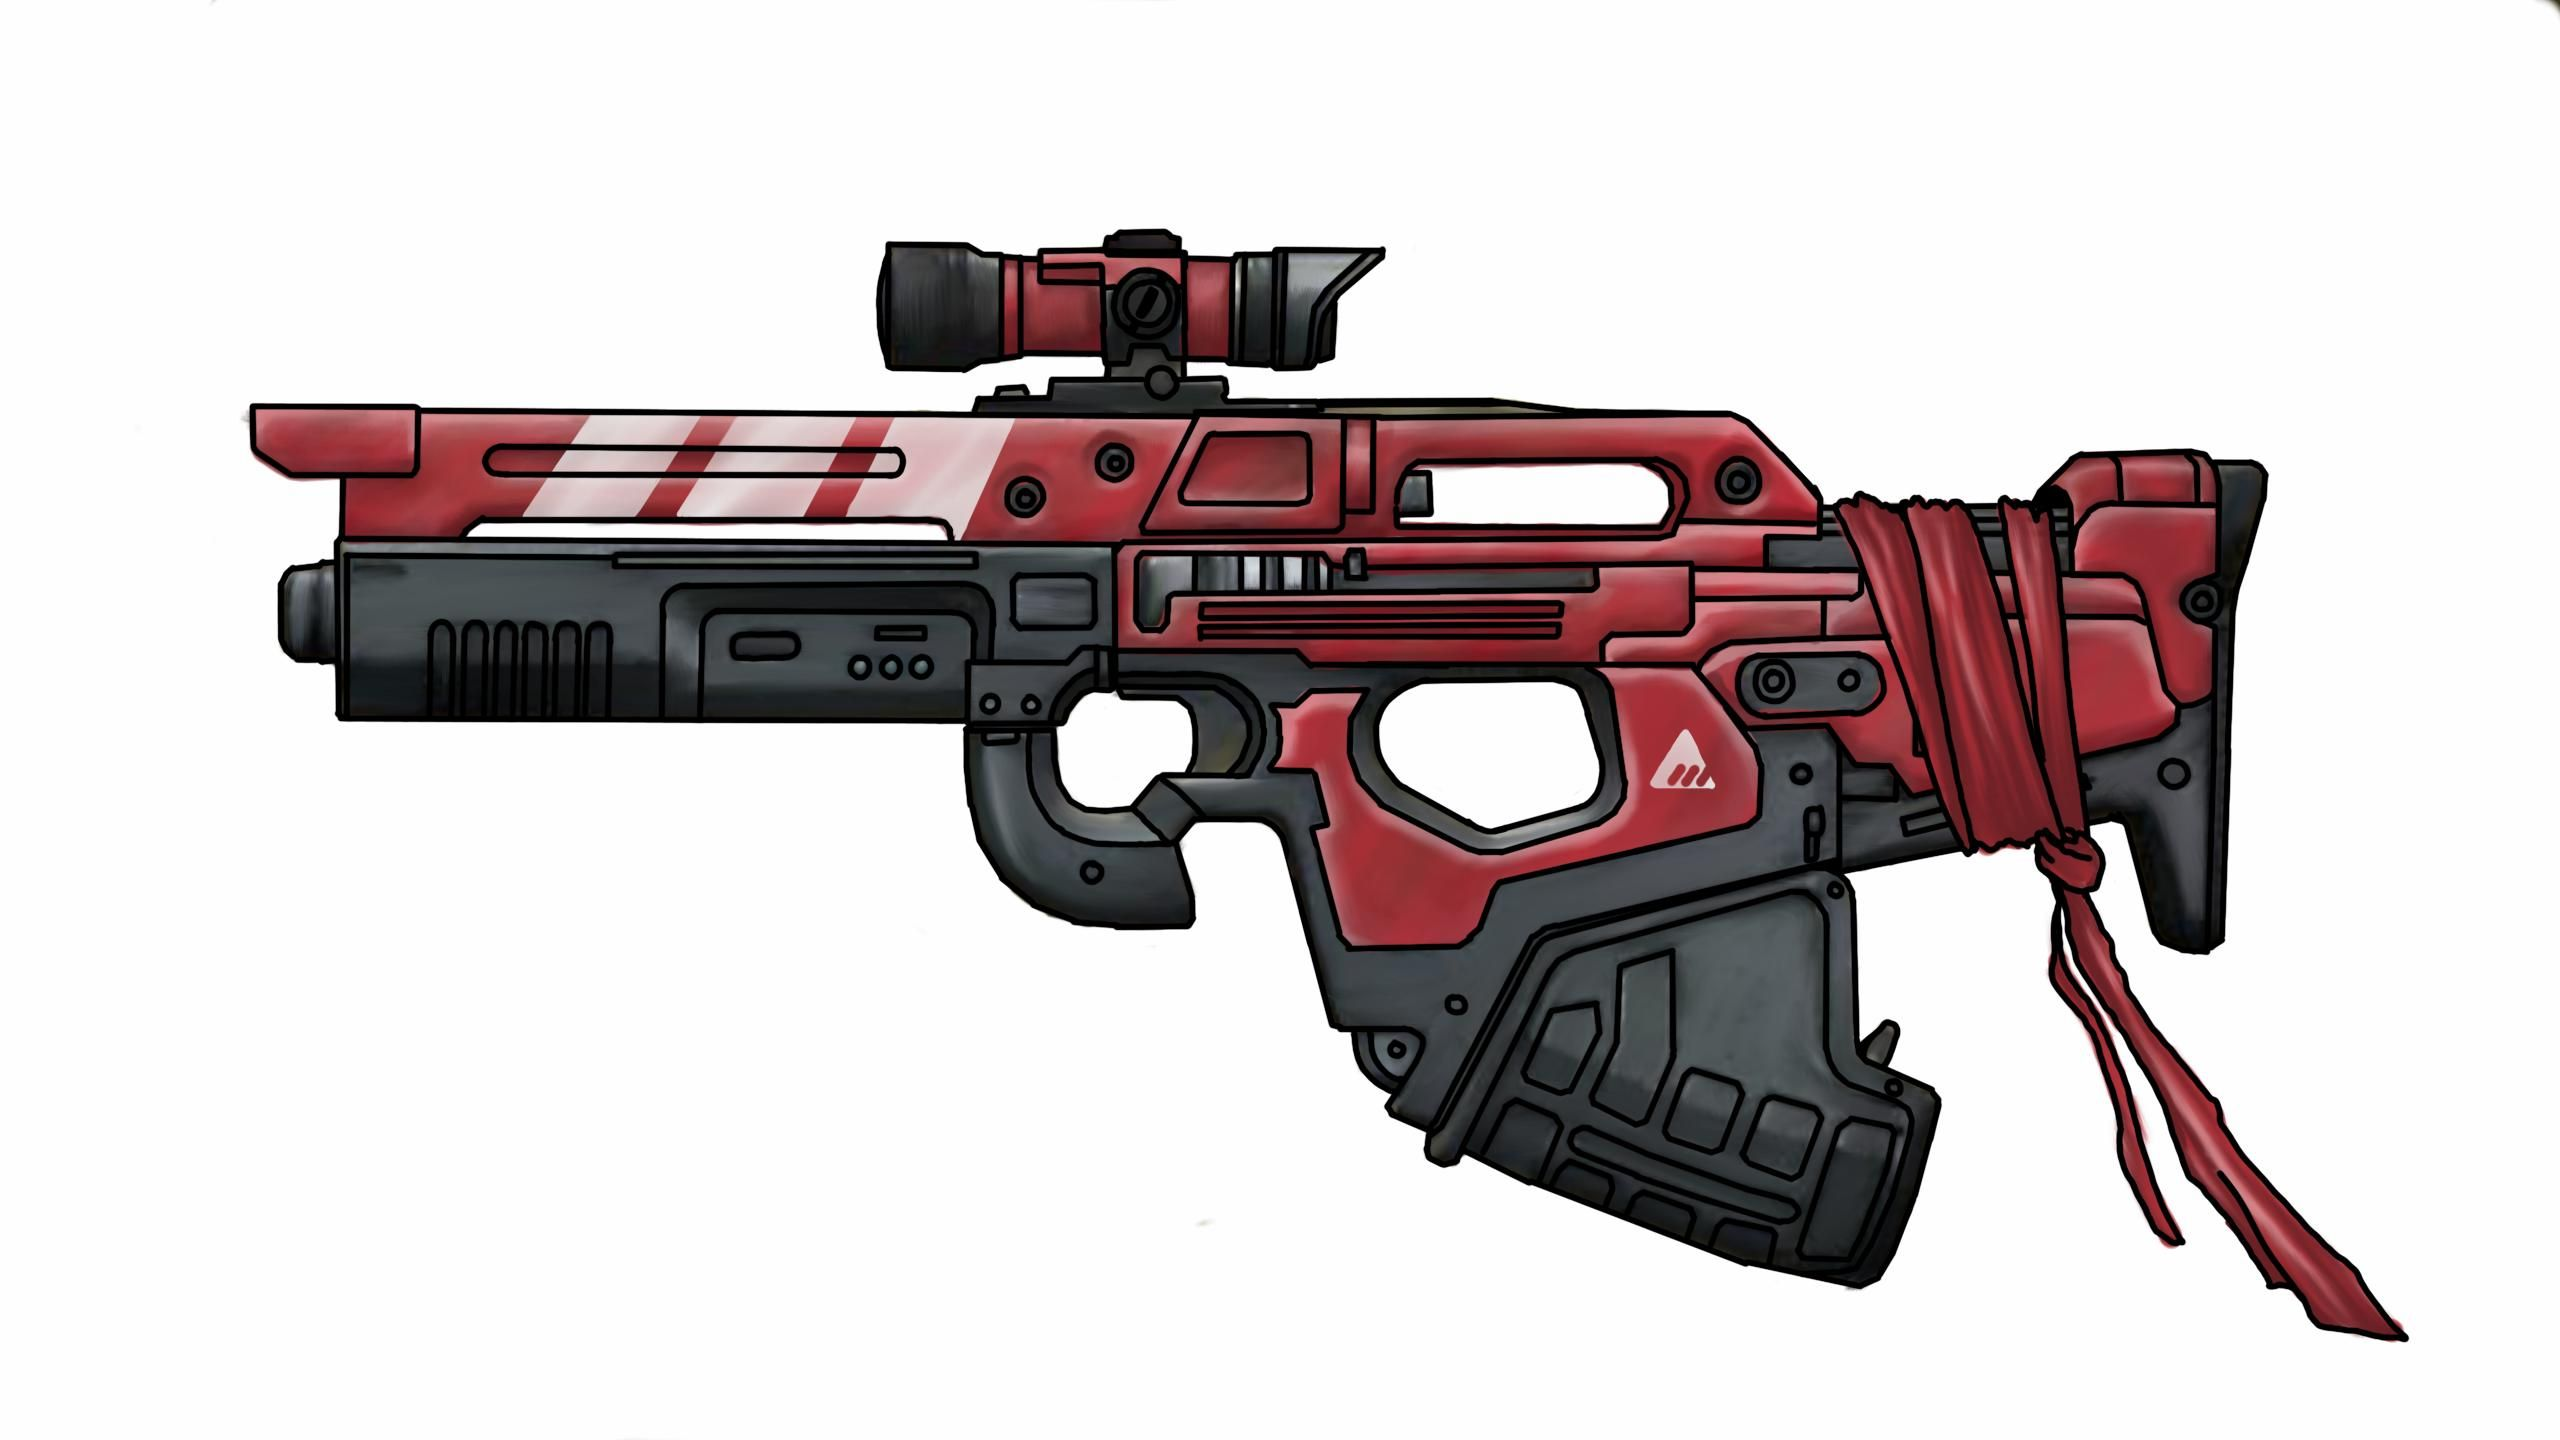 Mida New Monarchy reskin New monarchy, Destiny game